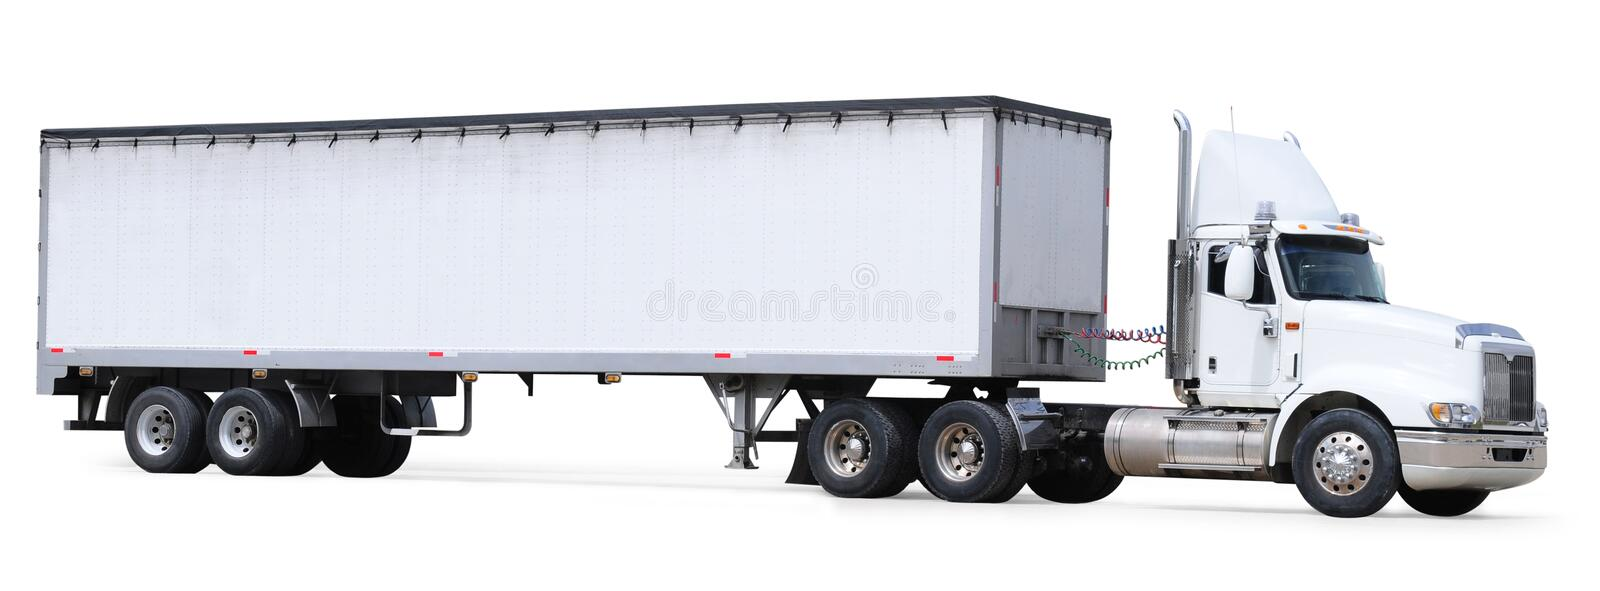 Truck. Isolated royalty free stock images